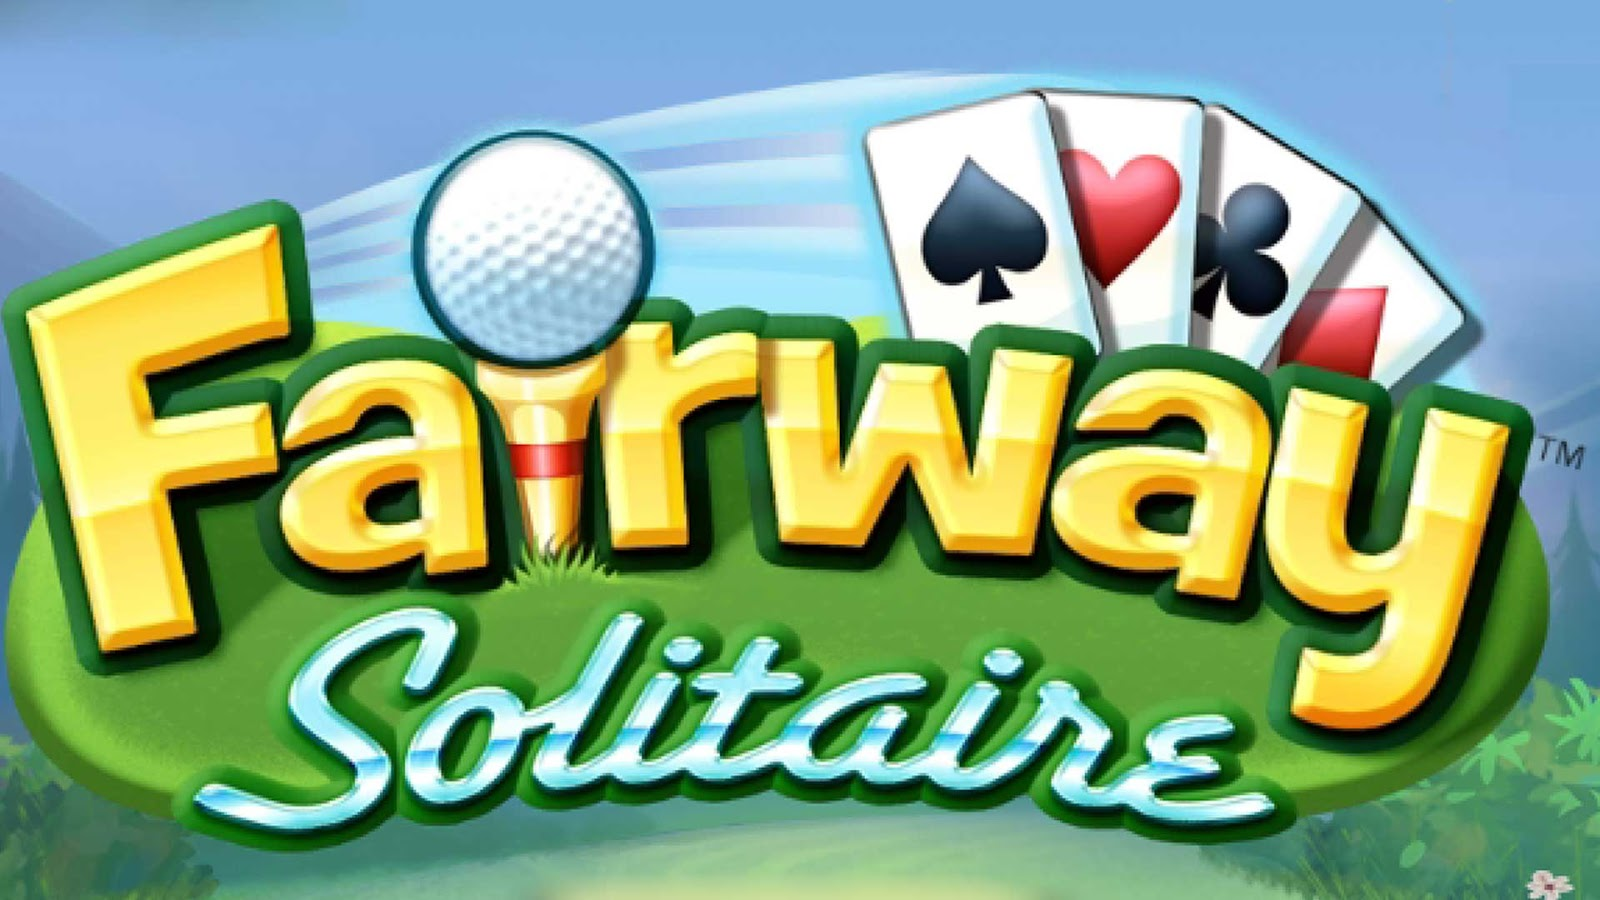 fairway golf solitaire